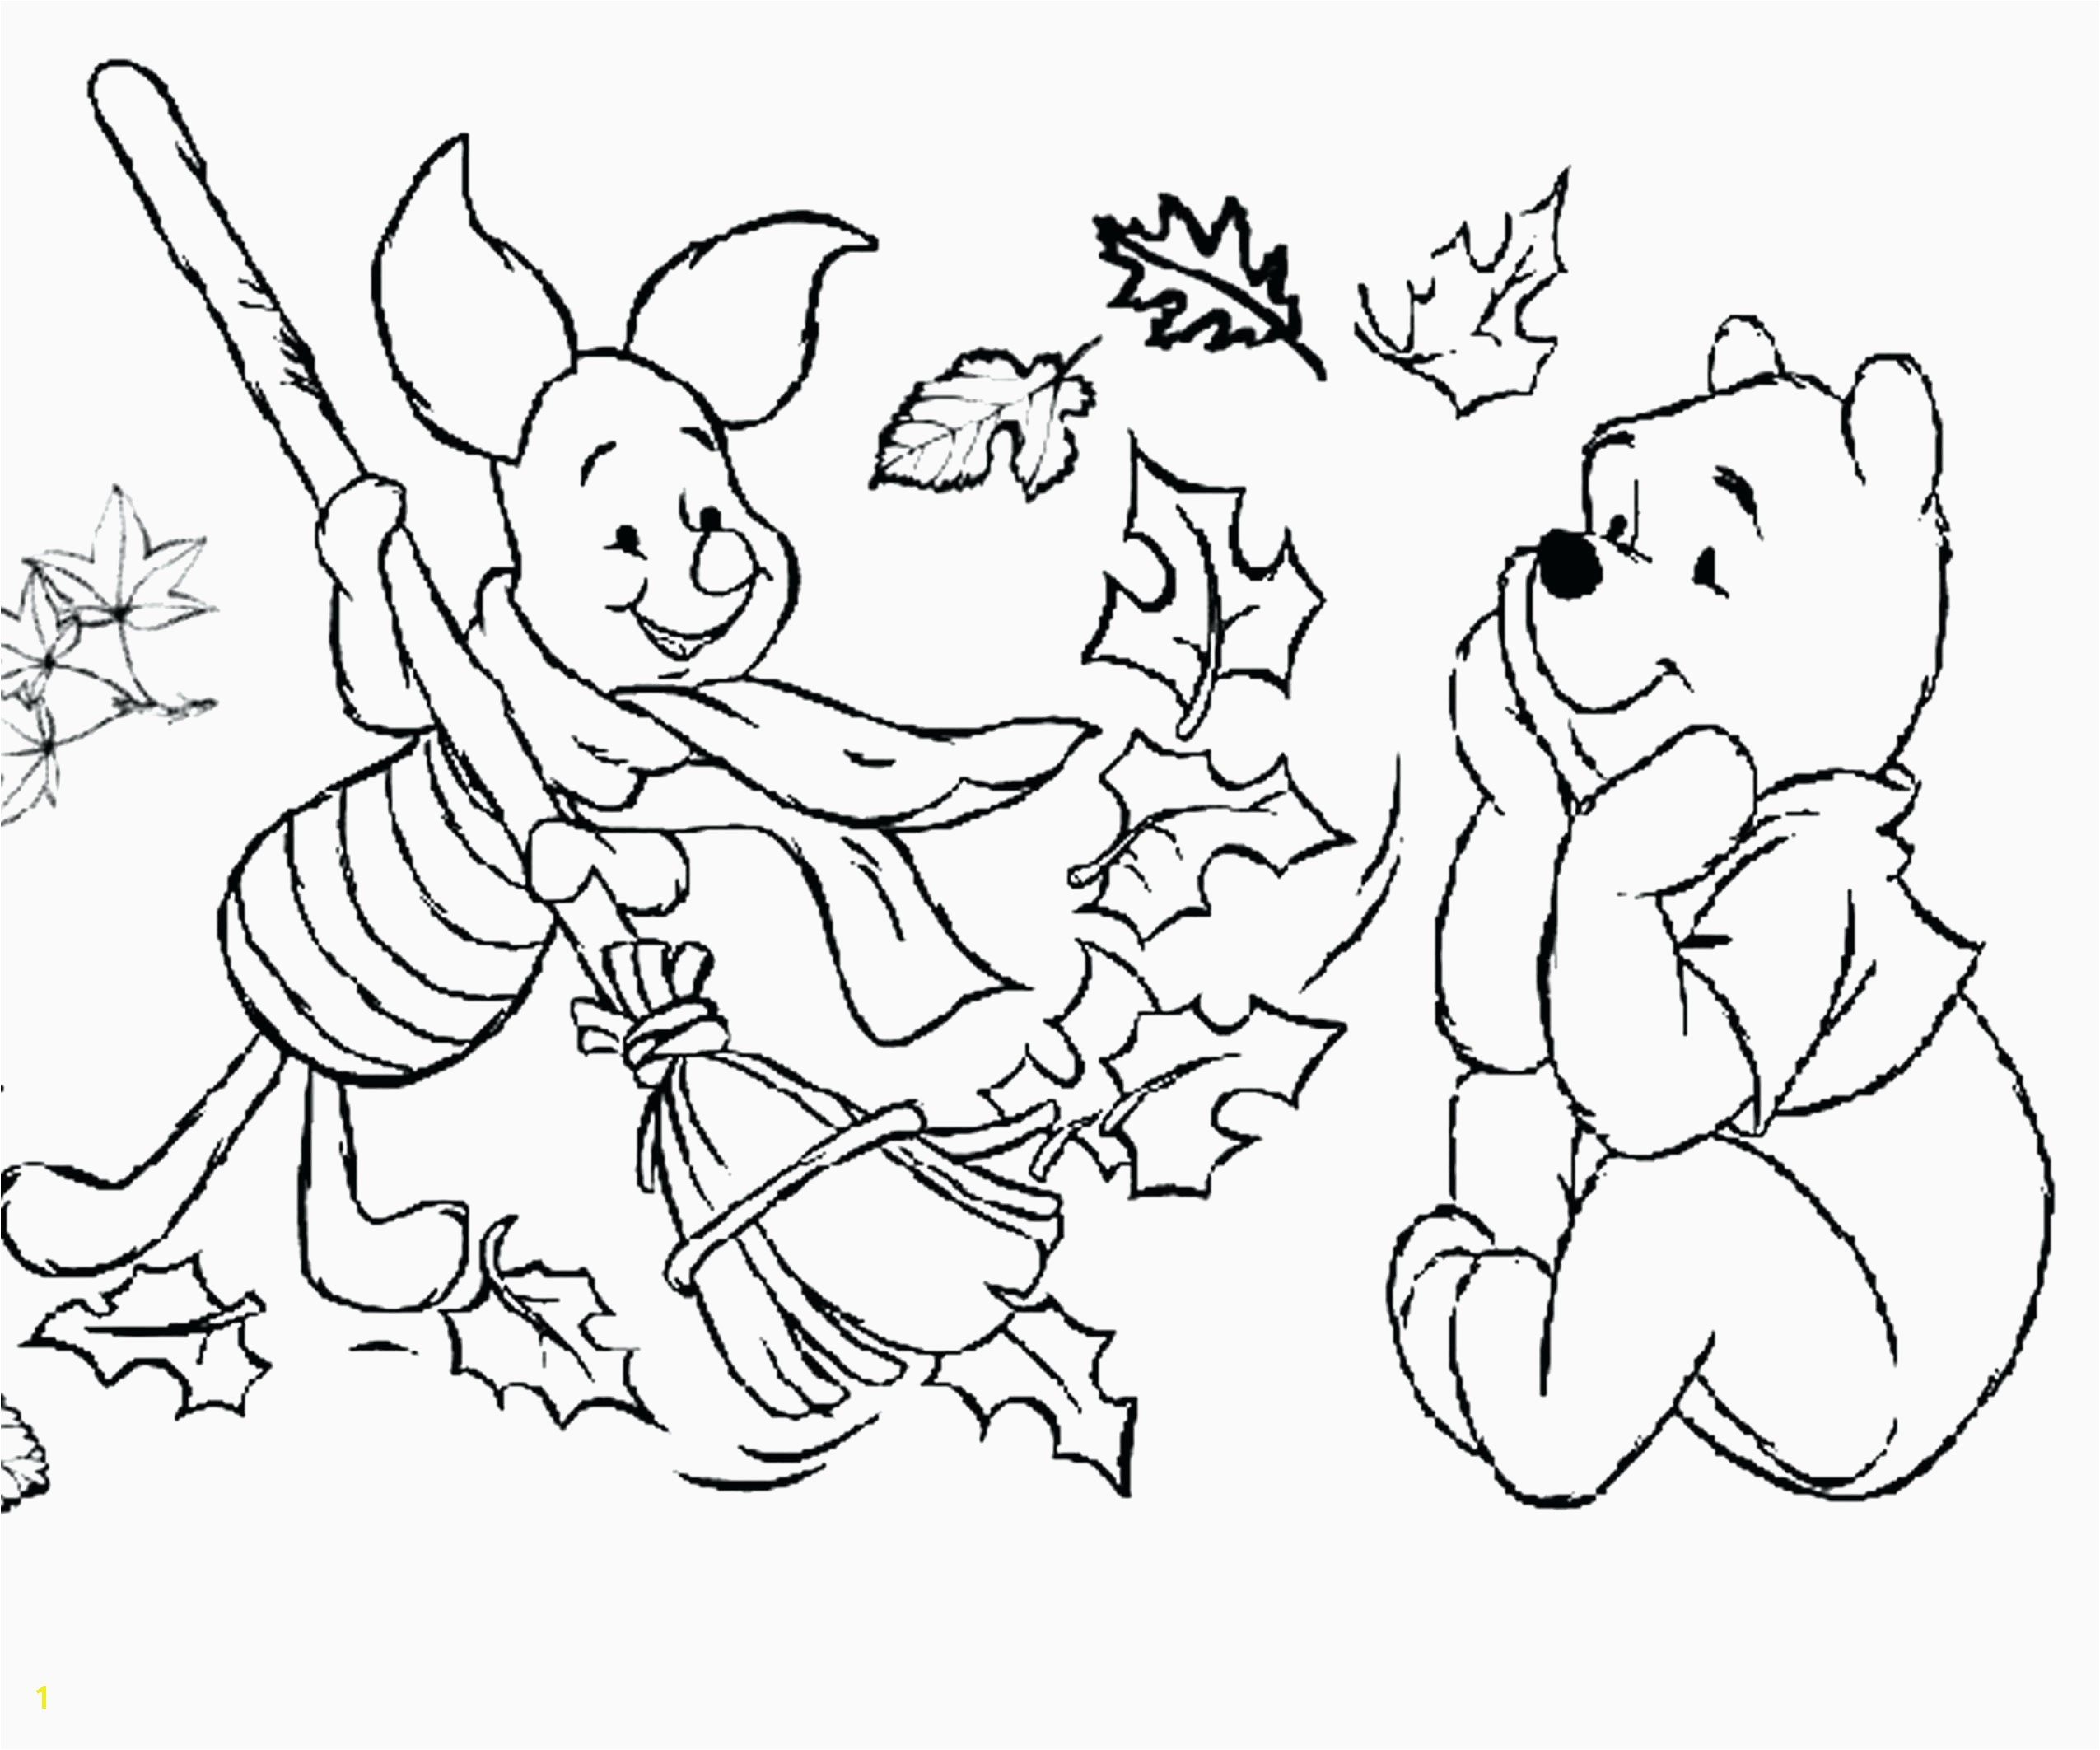 Batman Coloring Pages Games New Fall Coloring Pages 0d Page For Kidscoloring Pages Fall